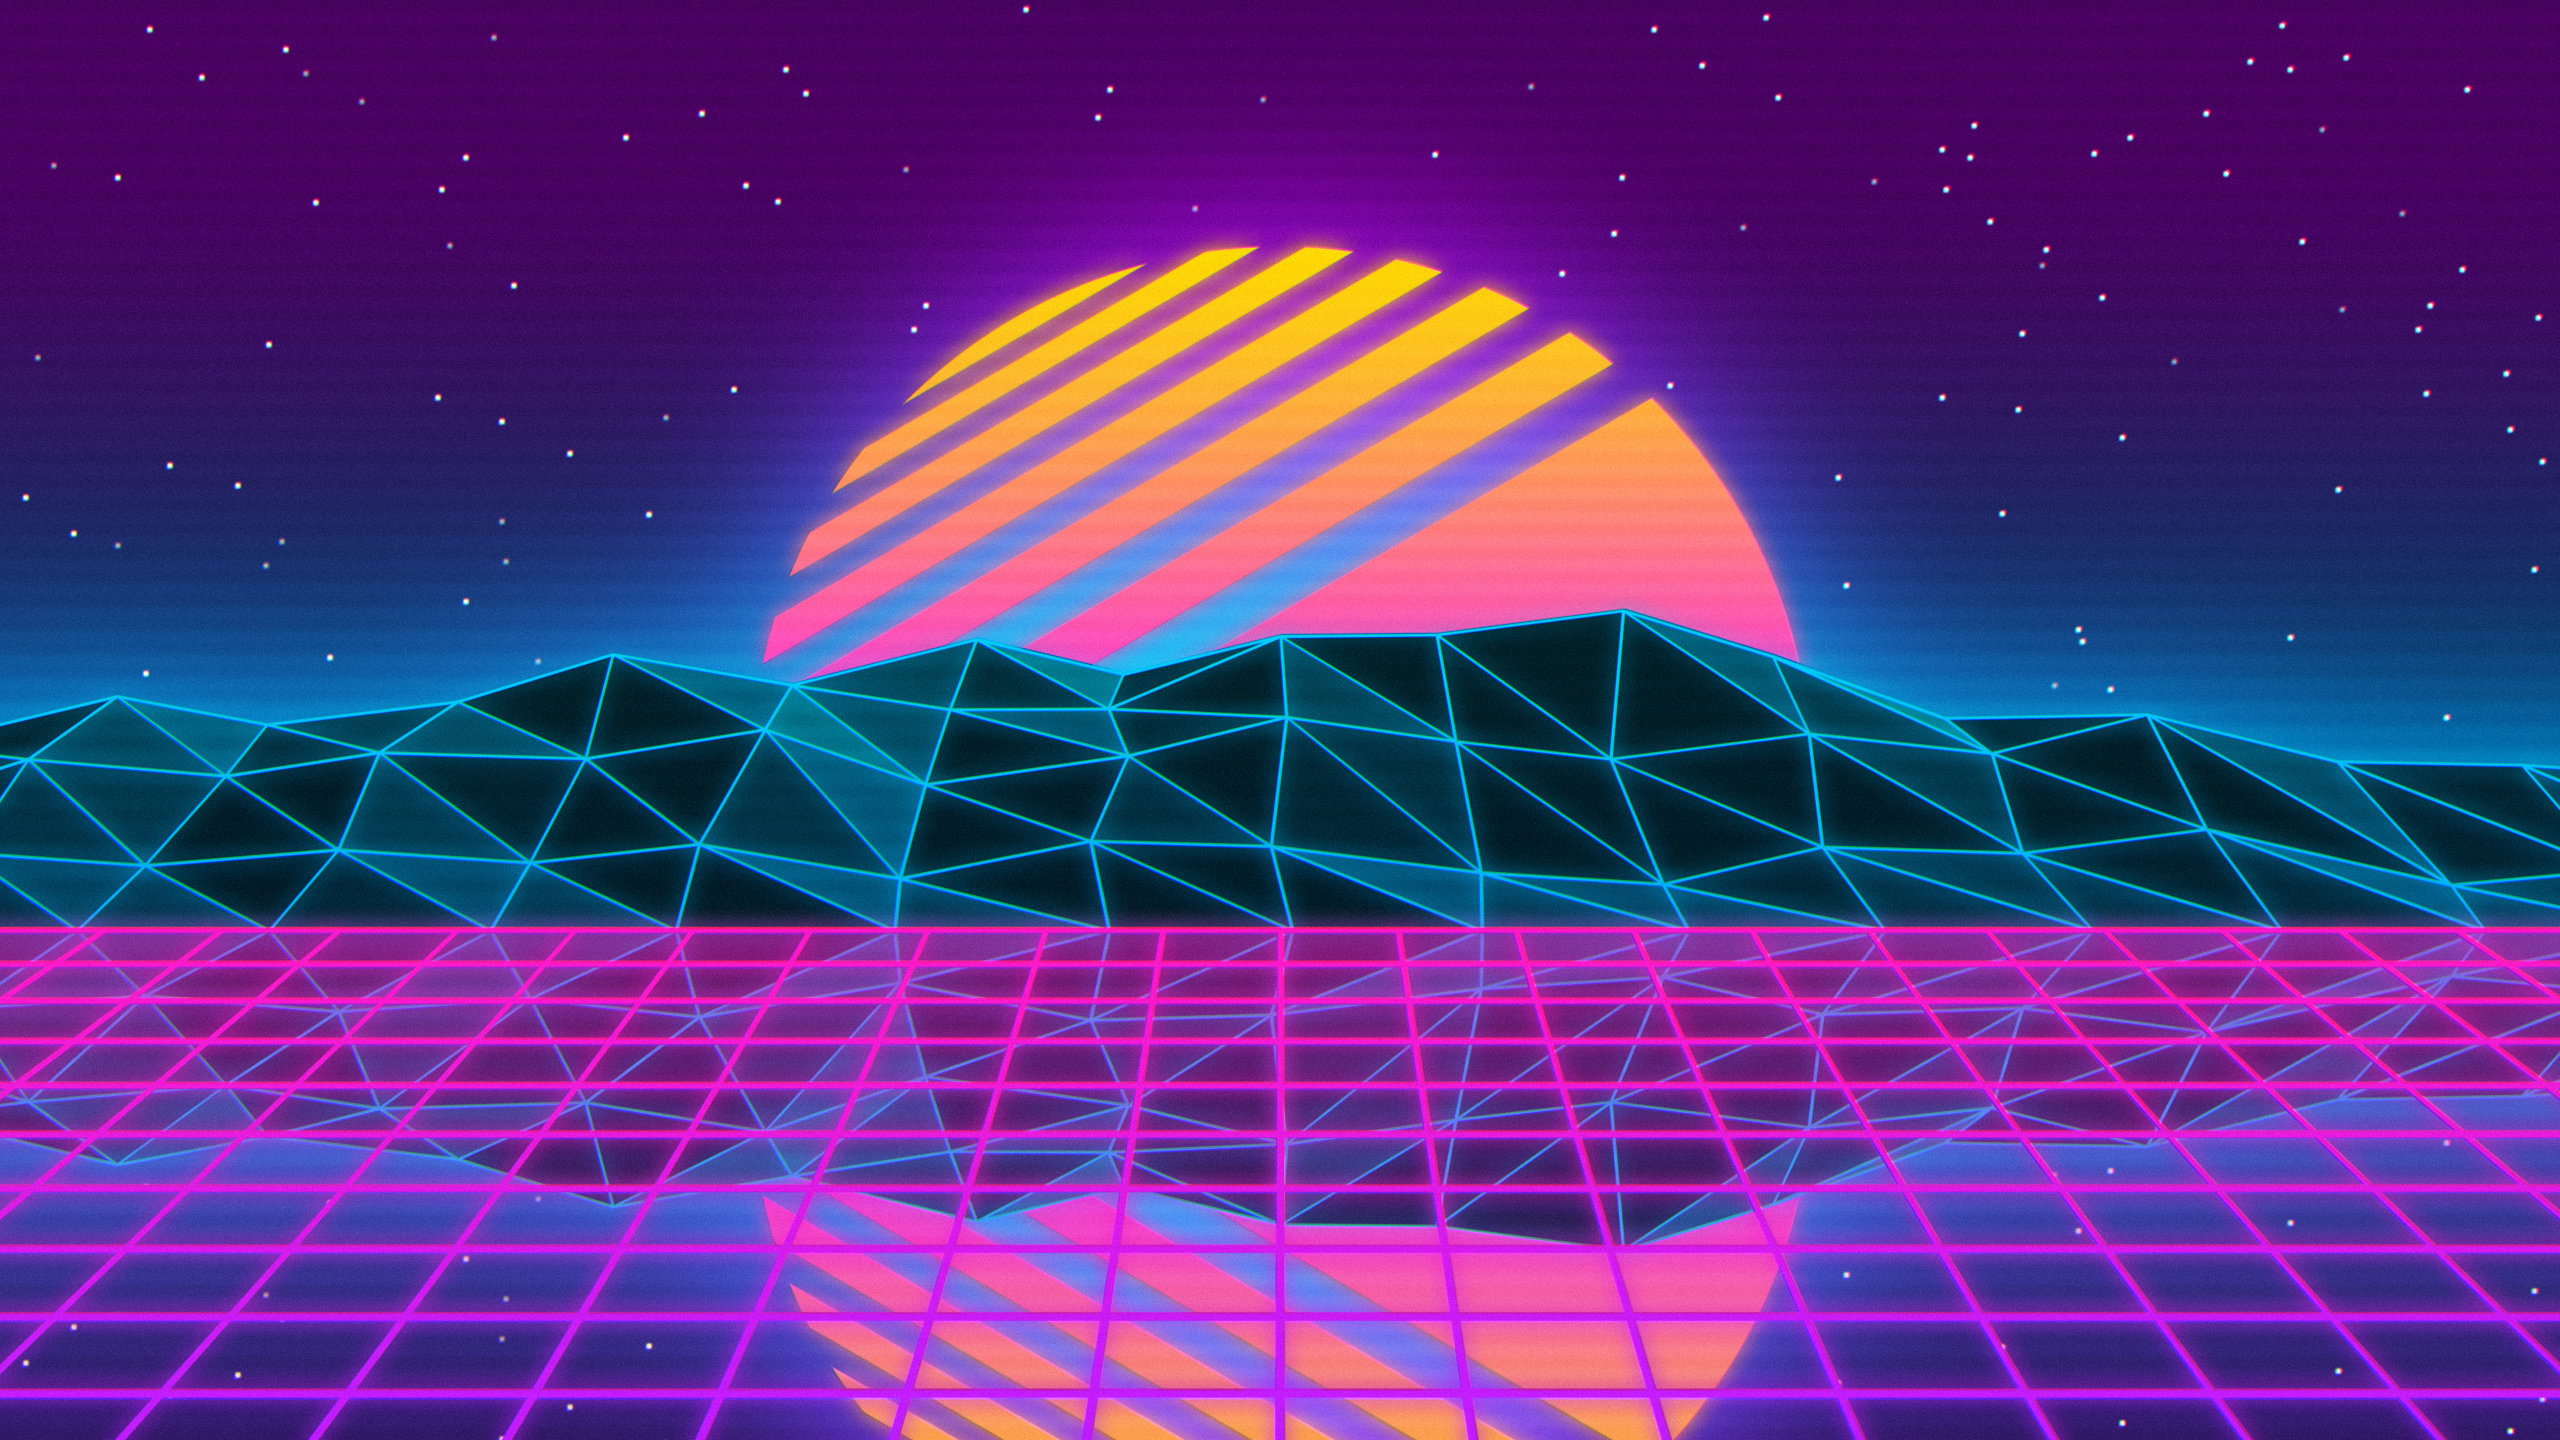 1125x2436 Vaporwave Iphone Xs Iphone 10 Iphone X Hd 4k Wallpapers Images Backgrounds Photos And Pictures